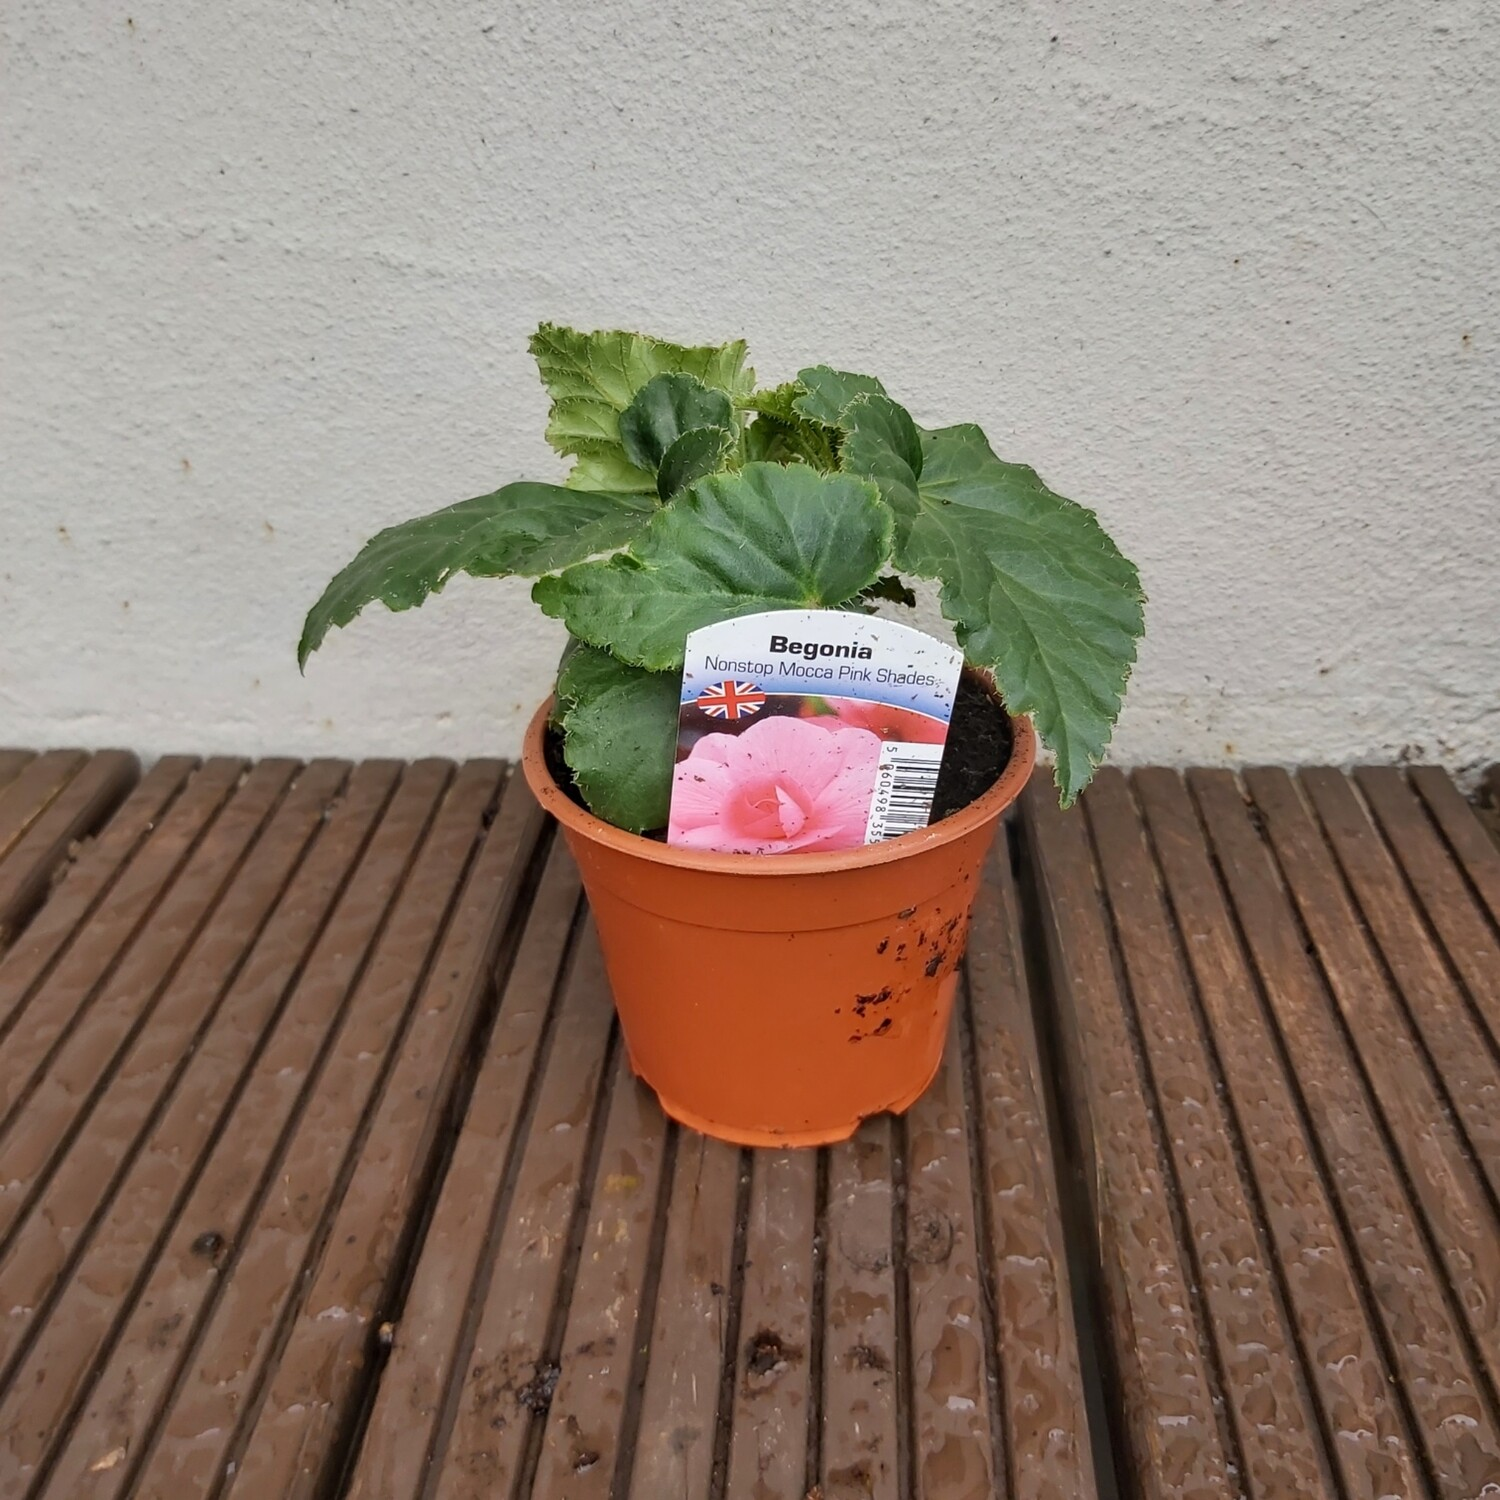 Begonia - Upright - Non-stop